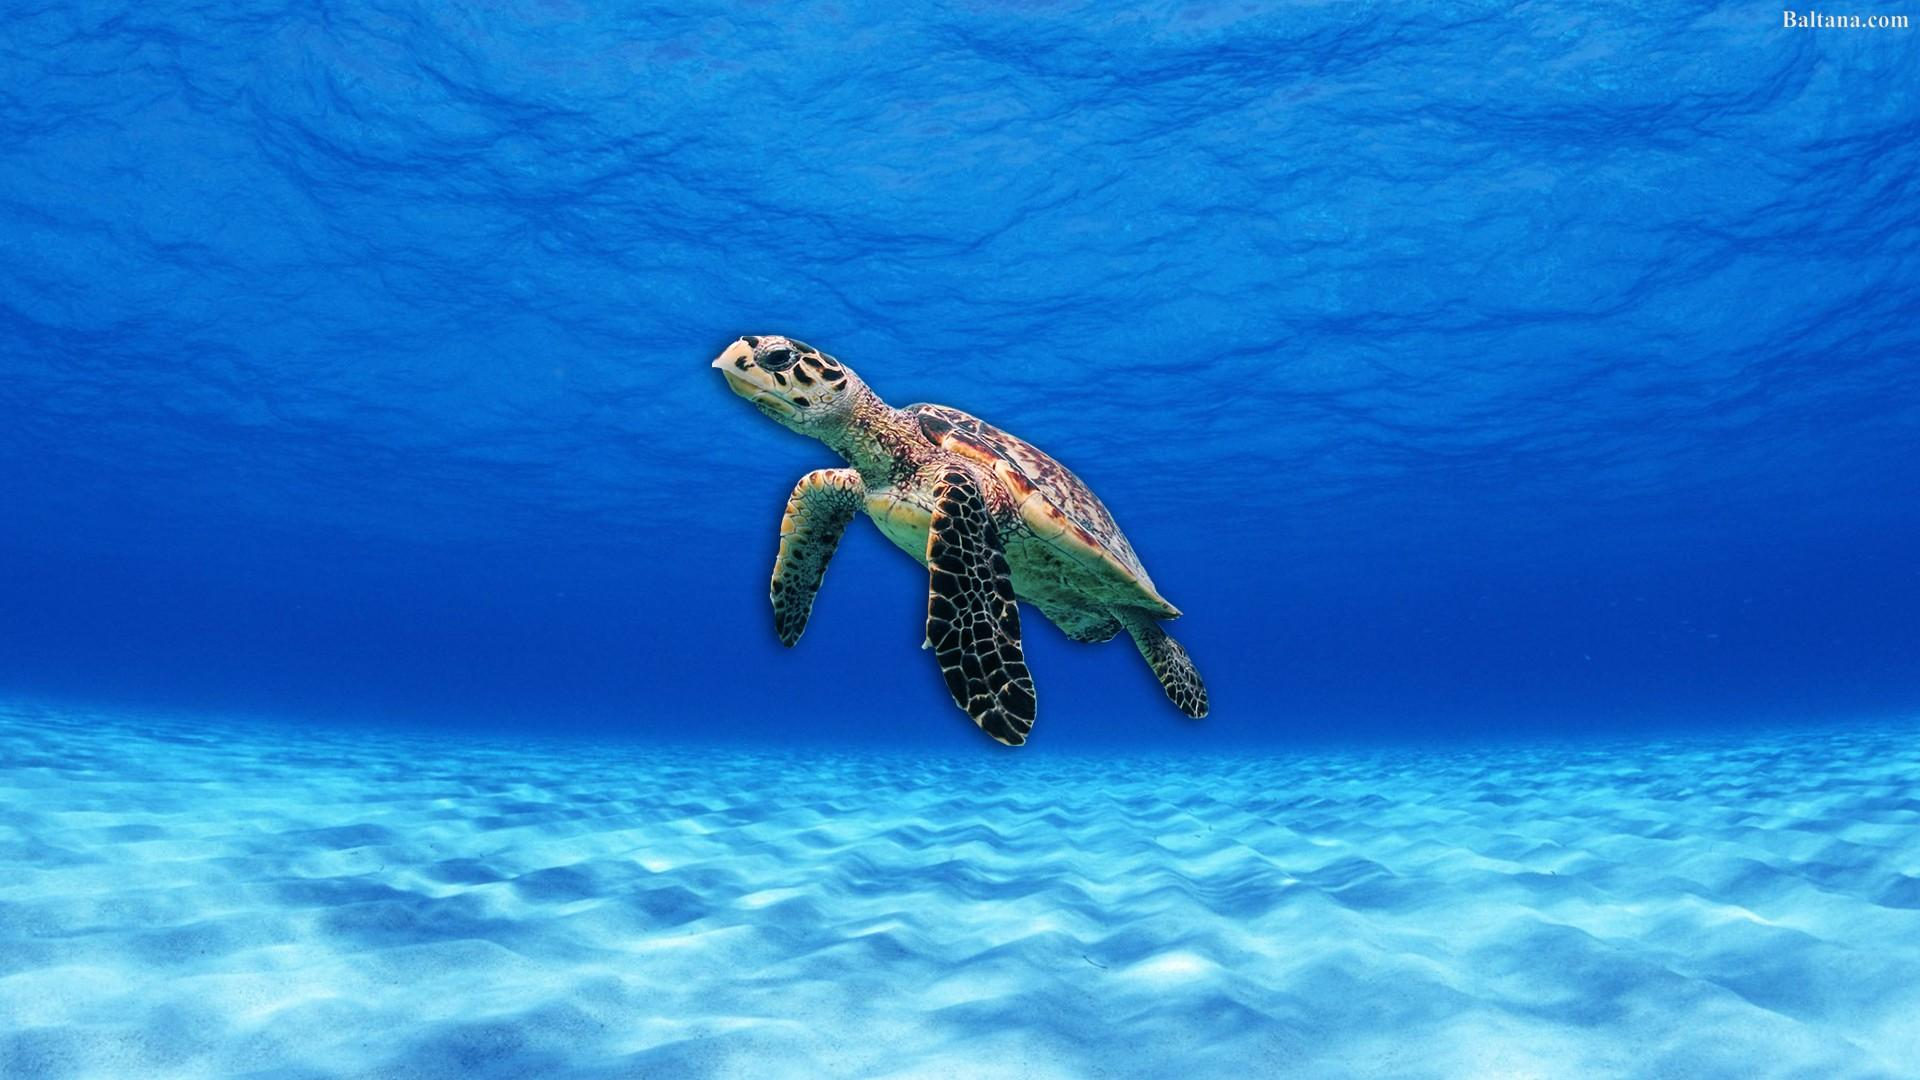 Sea Turtle Wallpapers - Wallpaper Cave